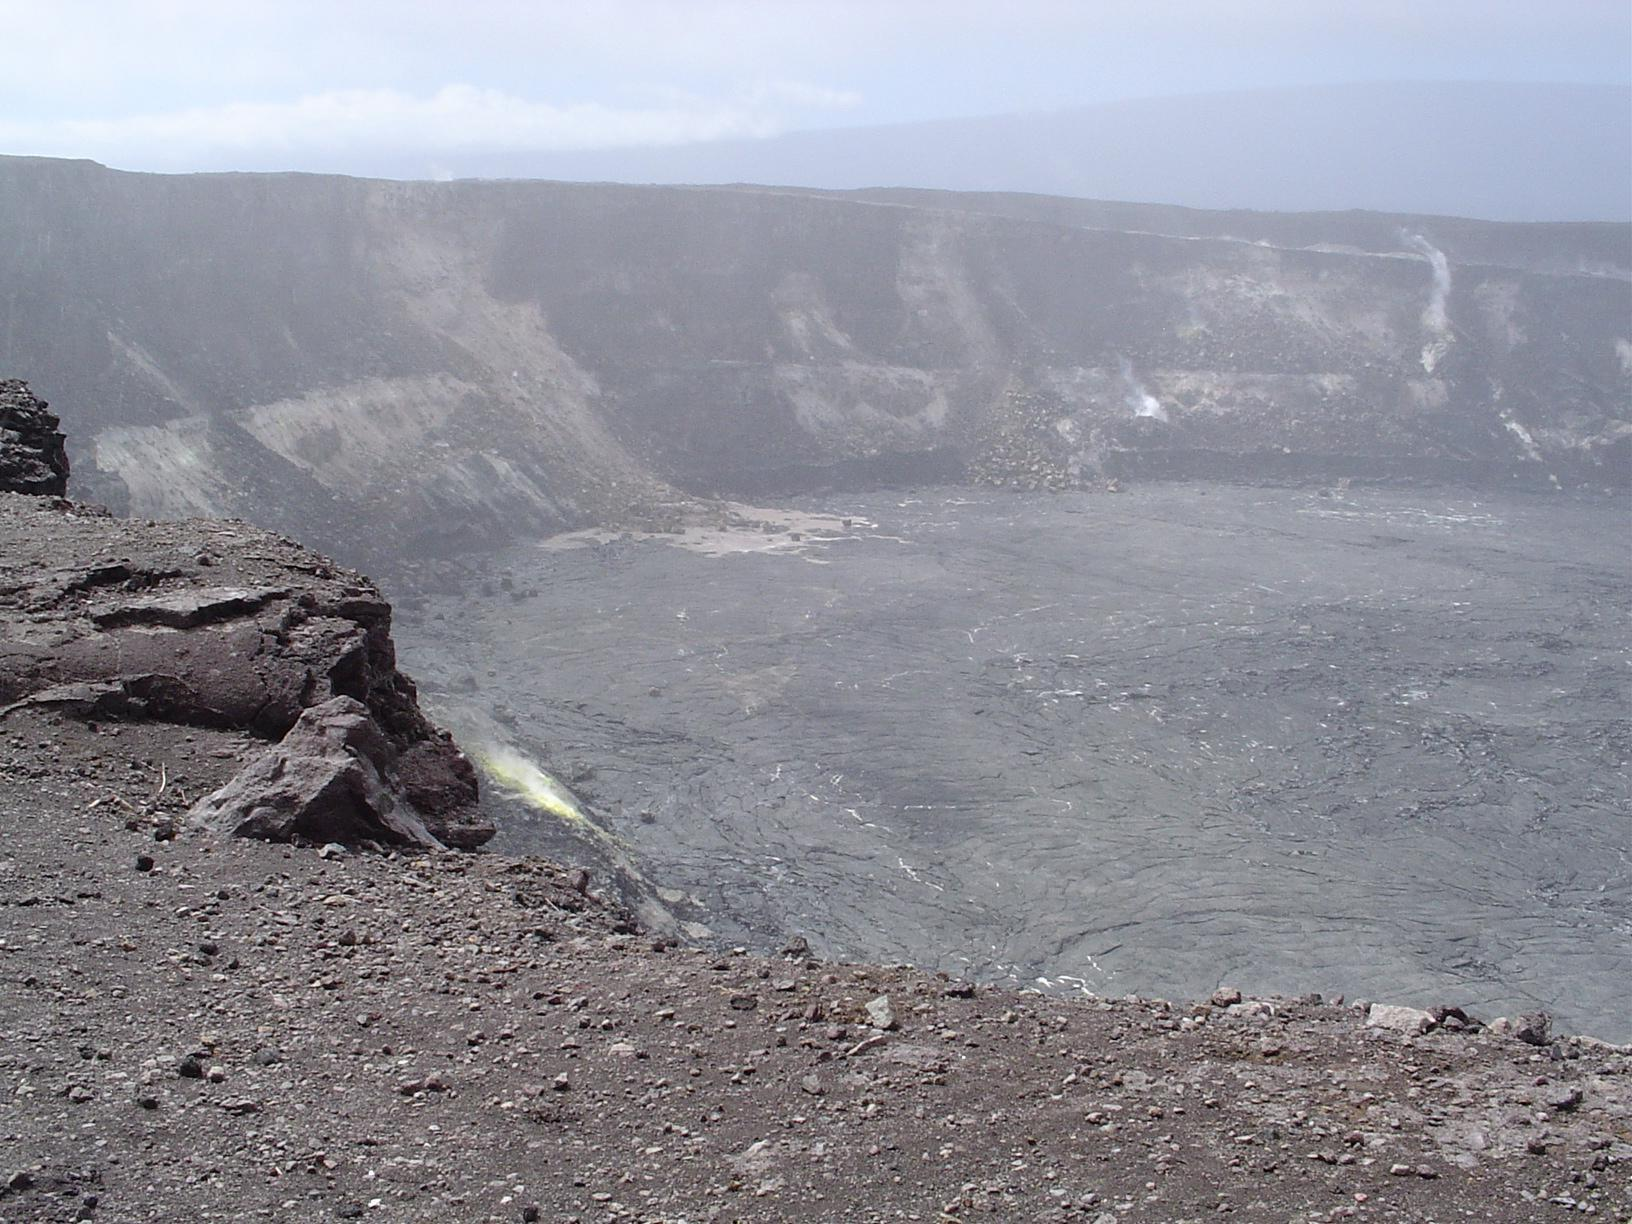 kona helicopter tours discount with Tours on Historic Kona Tour together with Snorkel Map also 8 Best Kona Beaches moreover Maui additionally Bite Me 3.